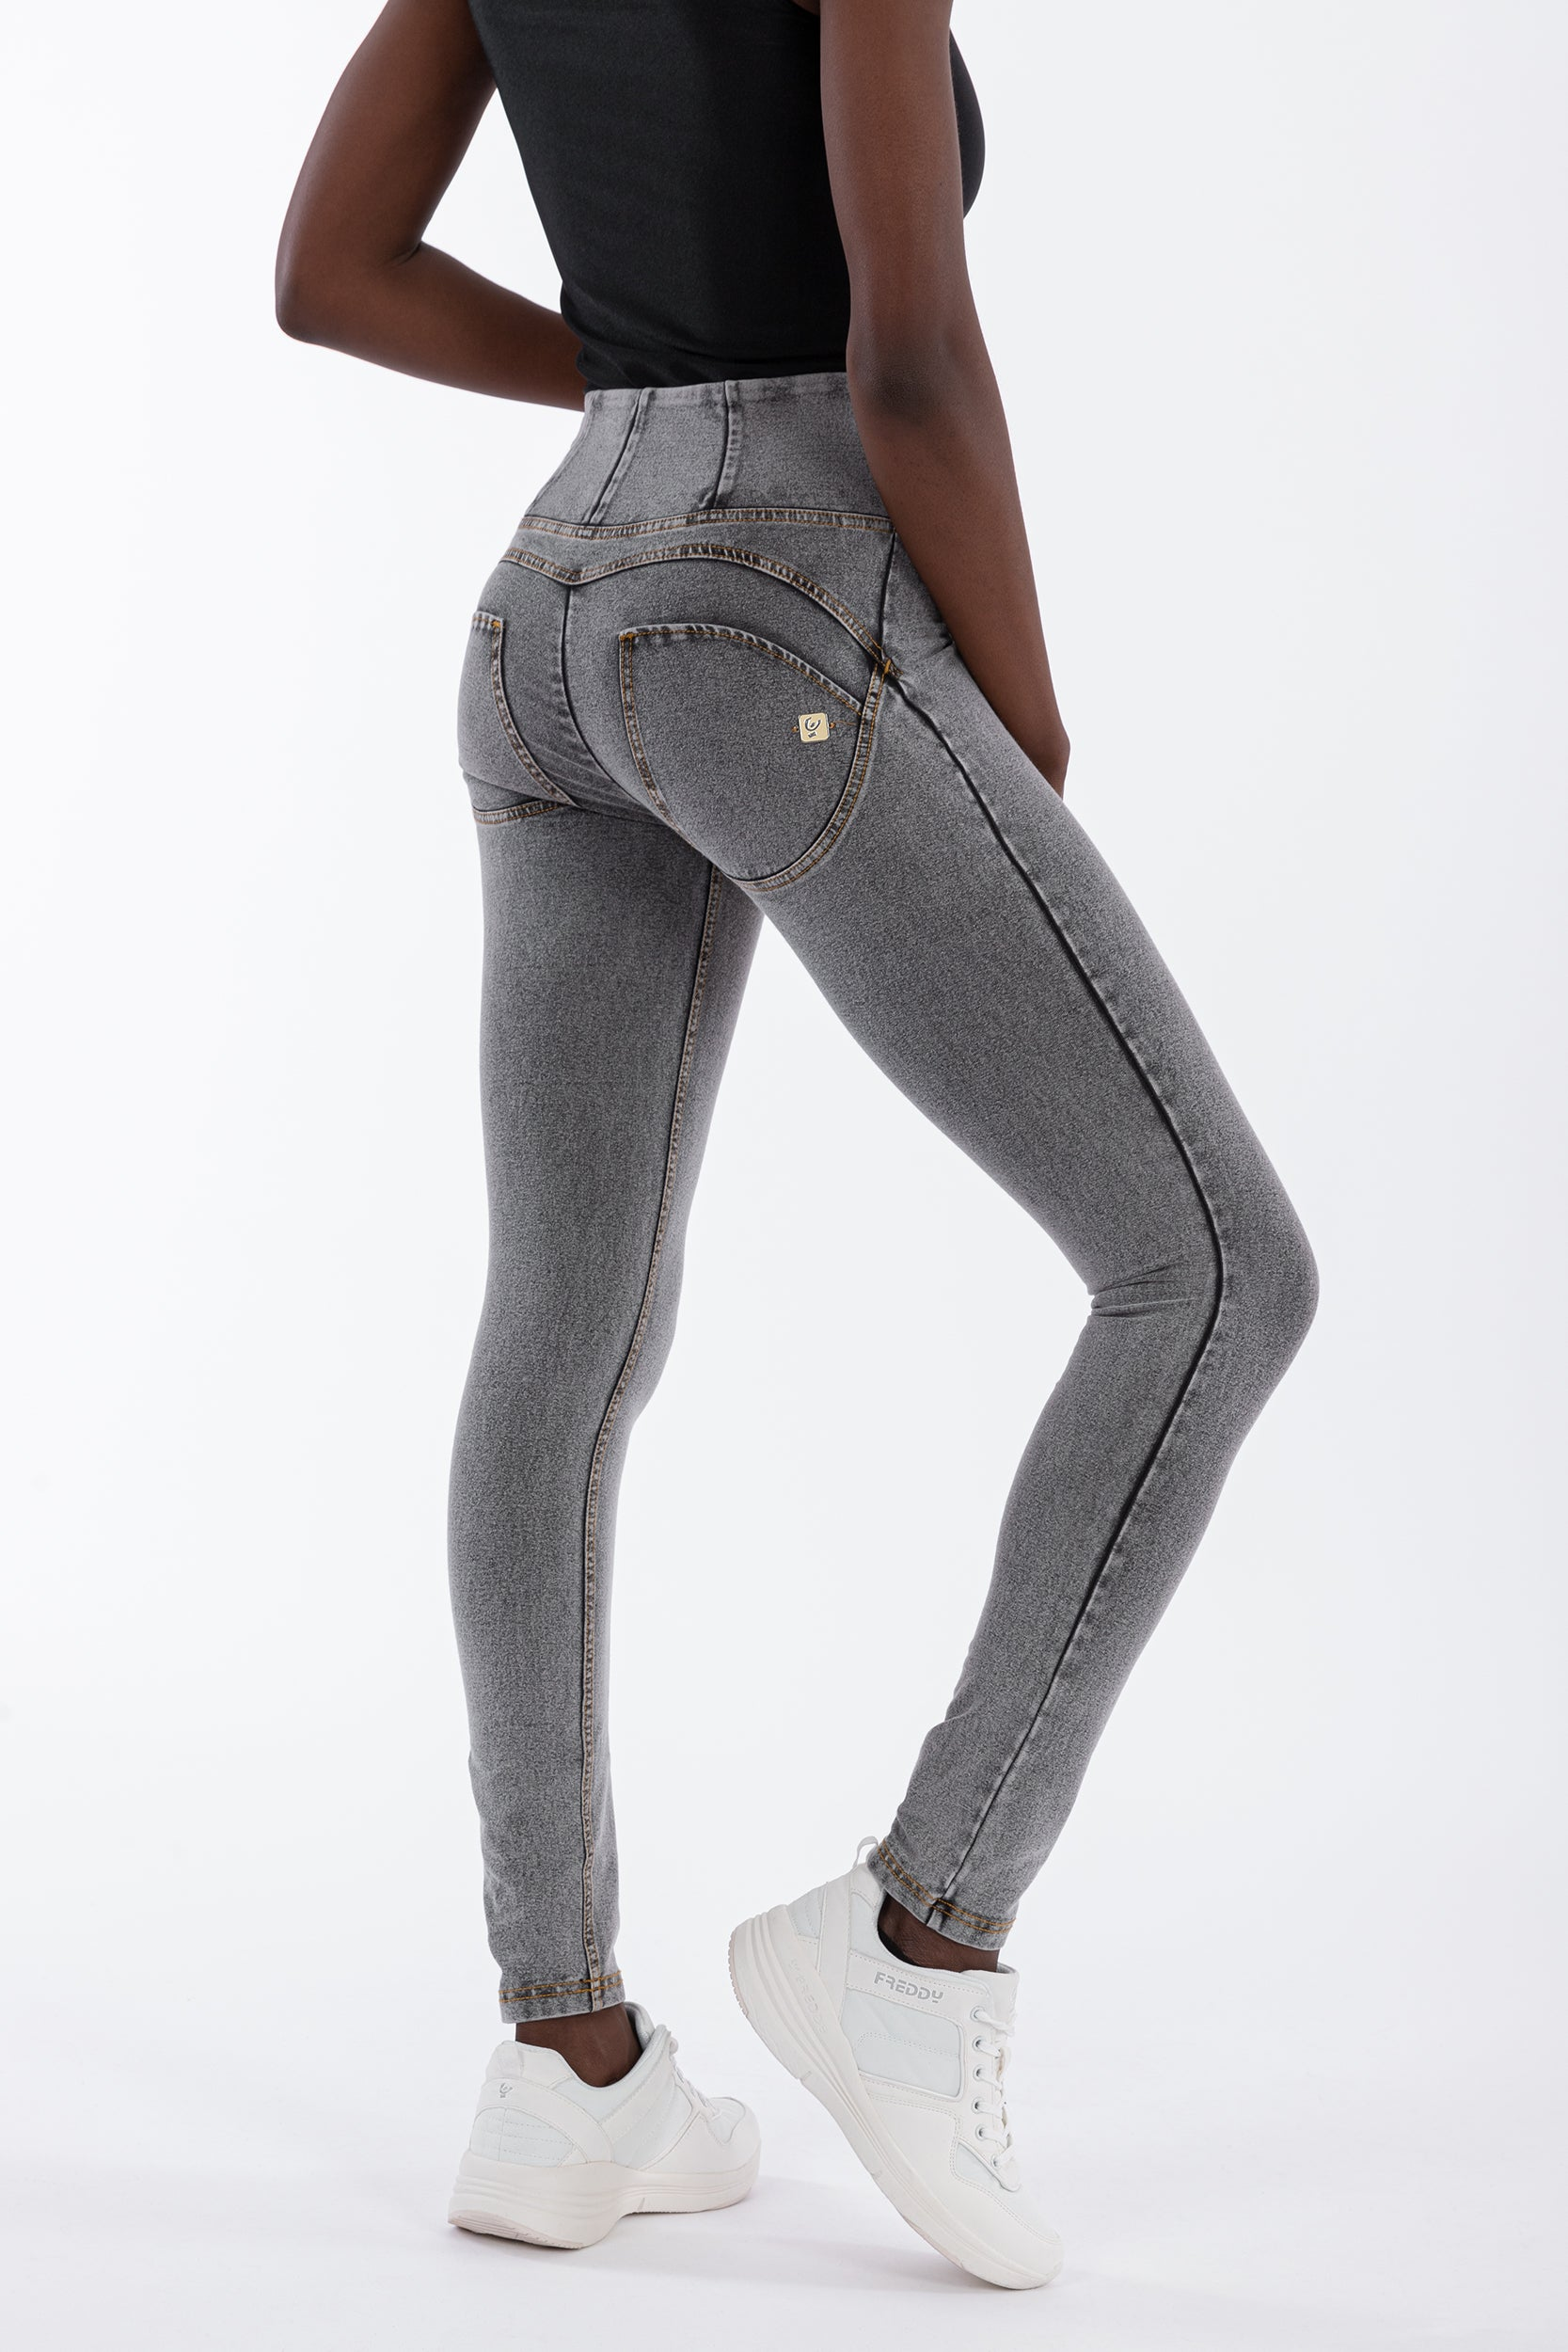 GREY DENIM HIGH RISE SELF TONE ZIP